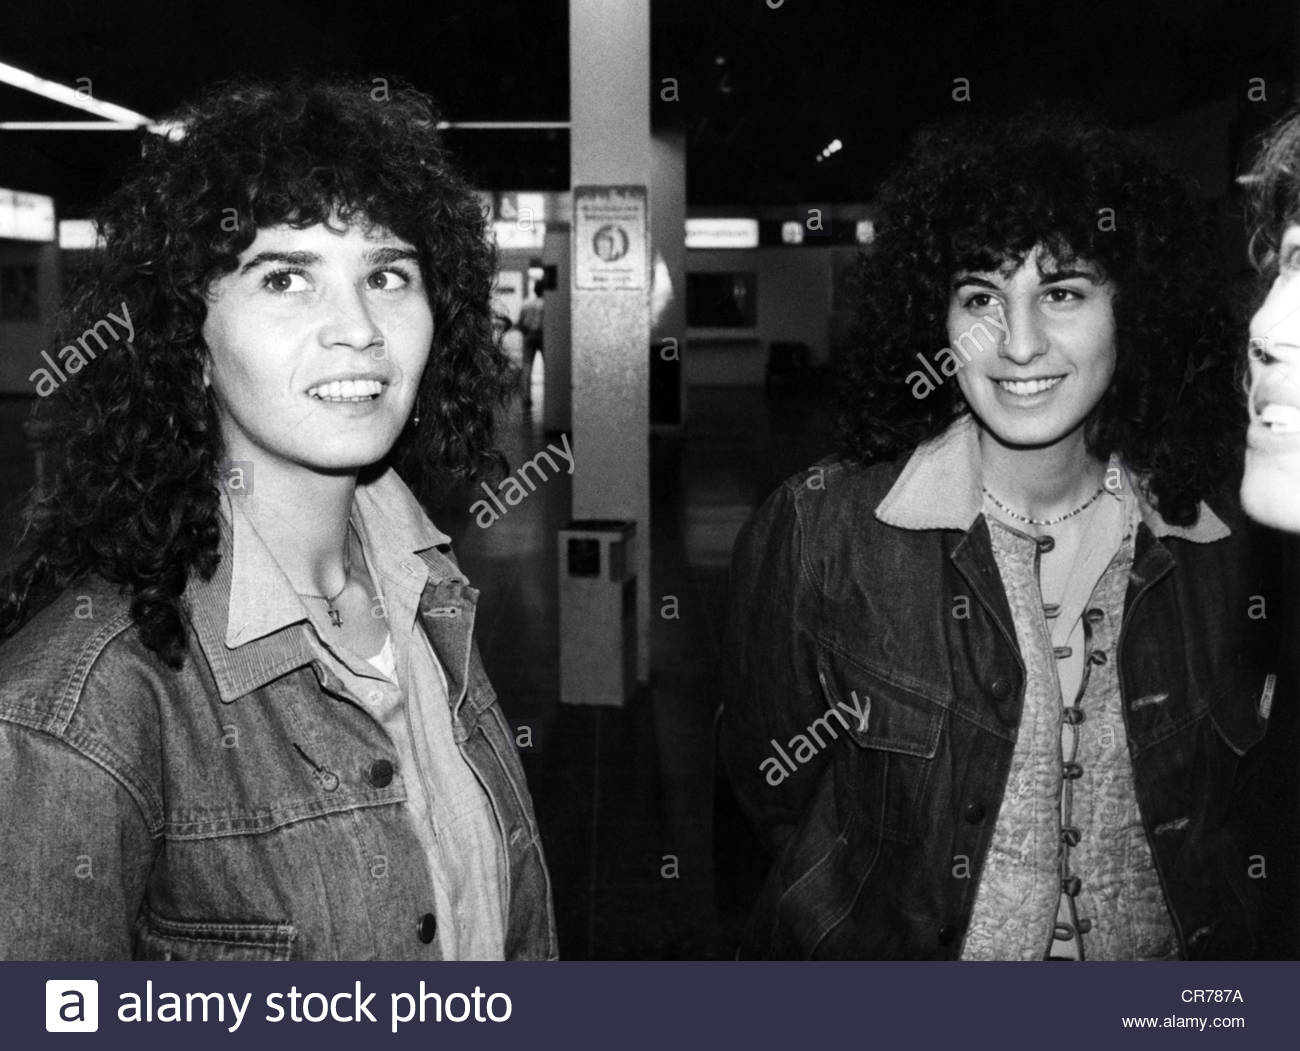 Schneider, Maria, 27.3.1952 - 3.2.2011, French actress (left), half length, with Maria Pia Almadio, 1981, Additional - Stock Image